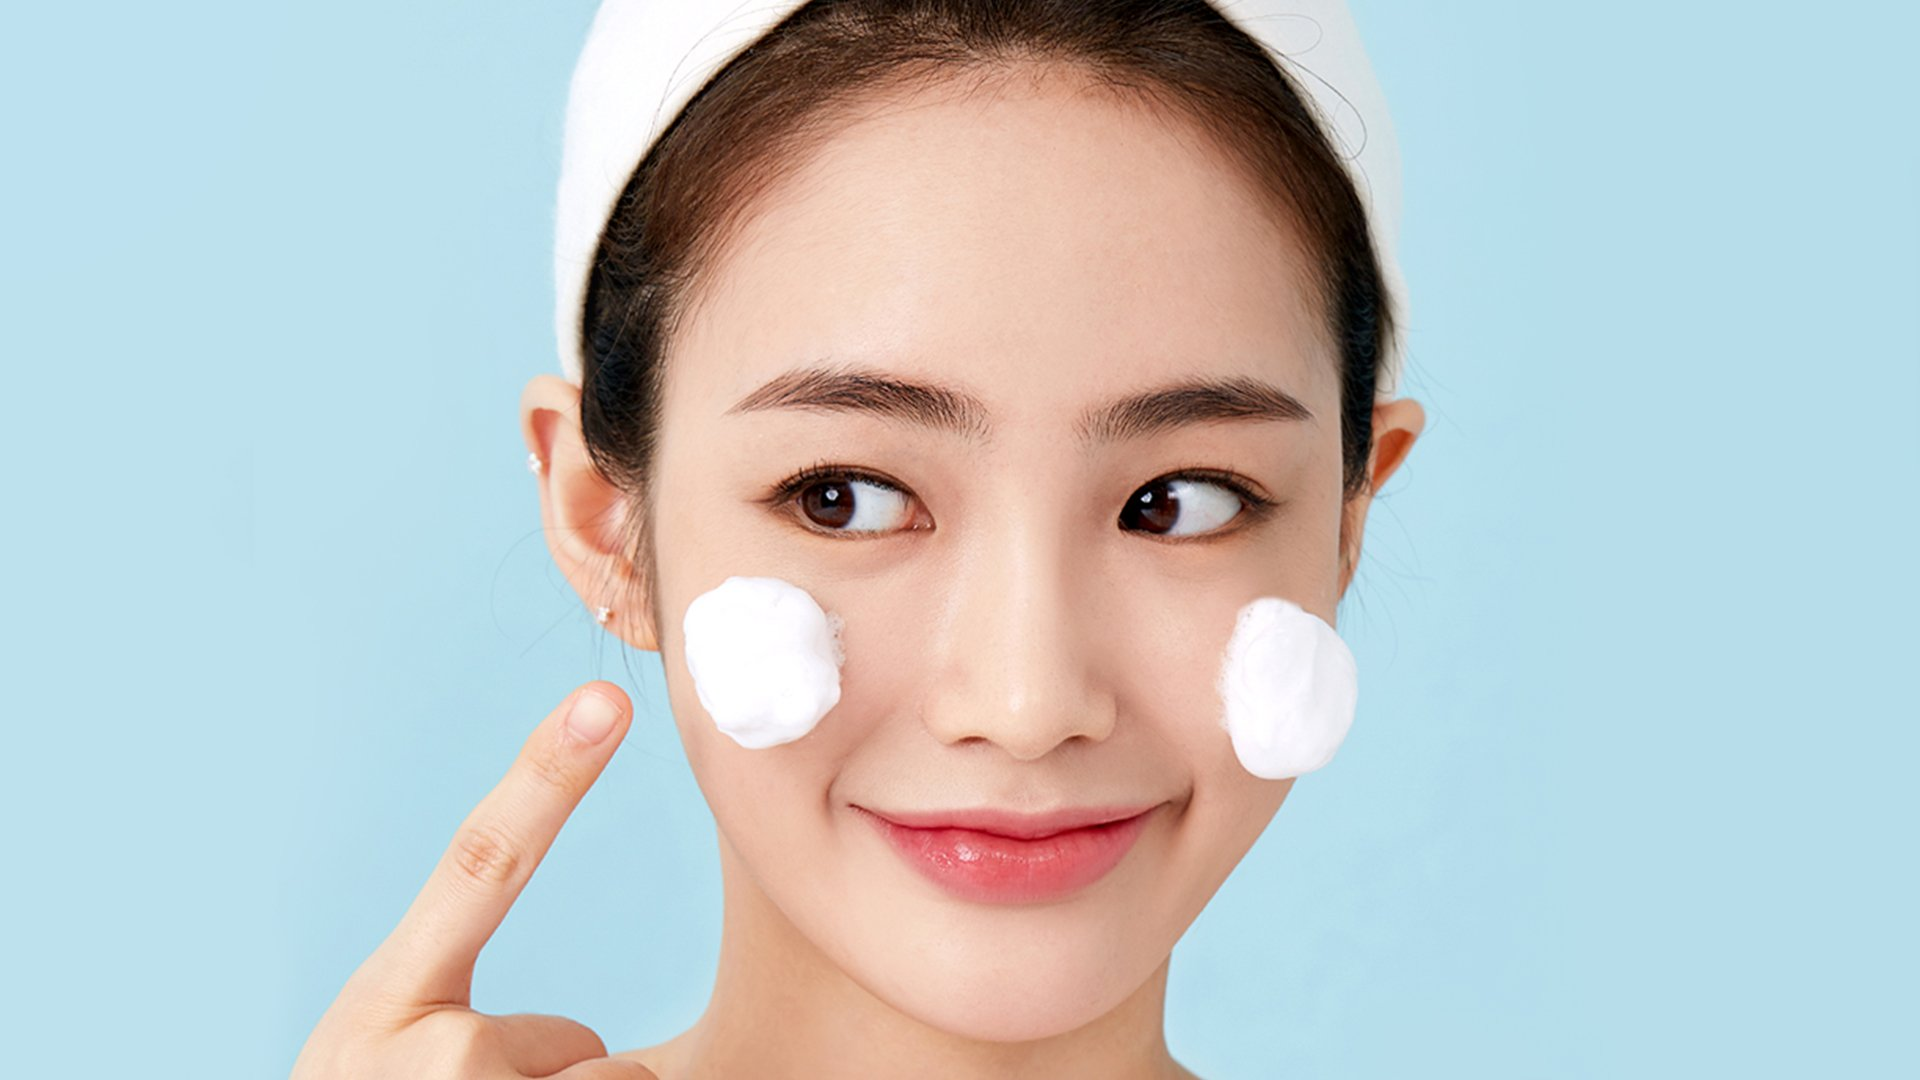 Waseyo_Blog_Ingredients-to-avoid-for-acne-prone-skin